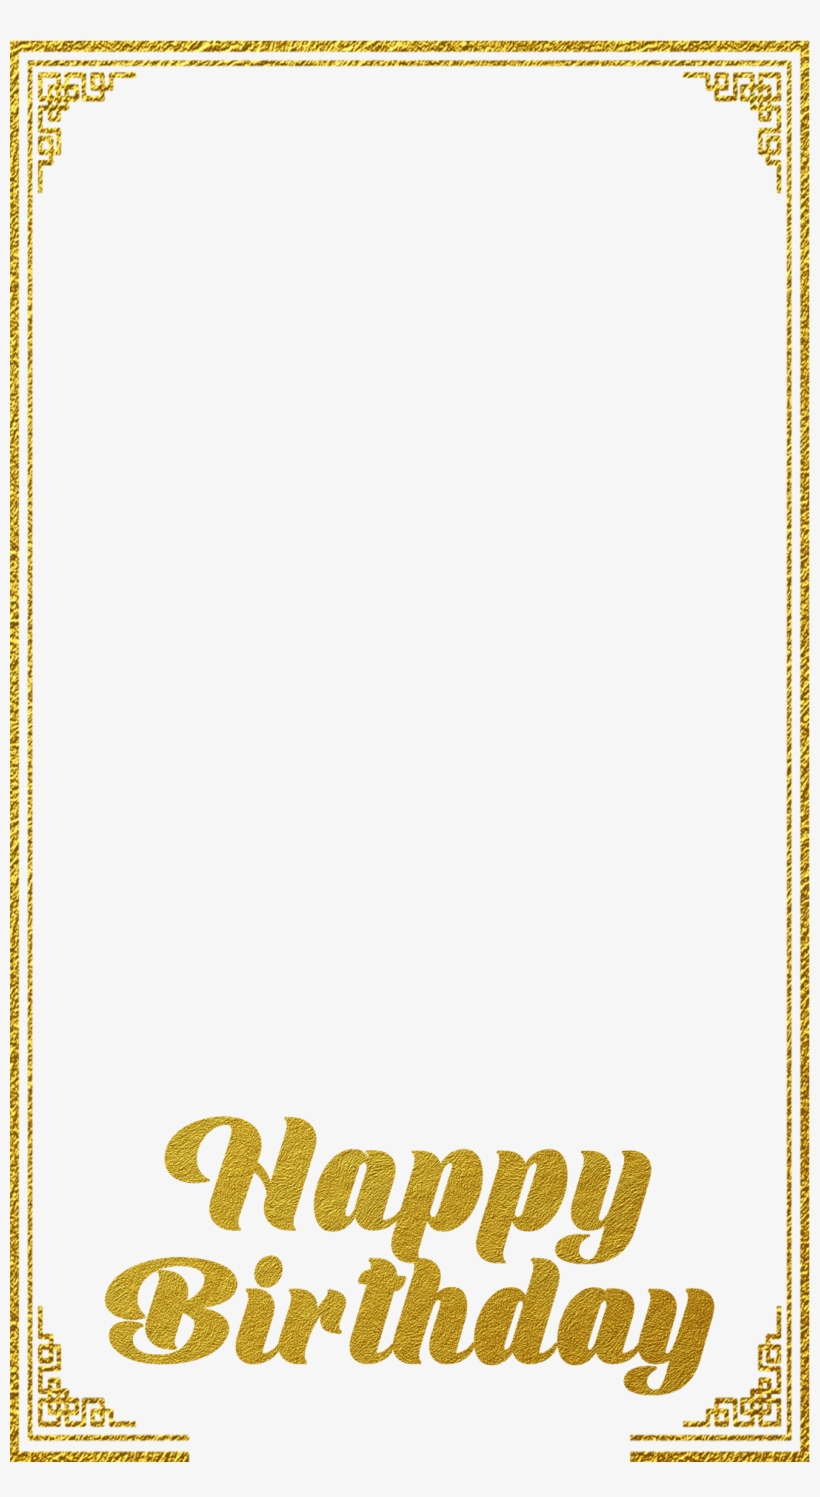 Birthday snapchat filter clipart jpg royalty free stock Gold Frame Birthday Snapchat Filter Geofilter Maker - Poster ... jpg royalty free stock